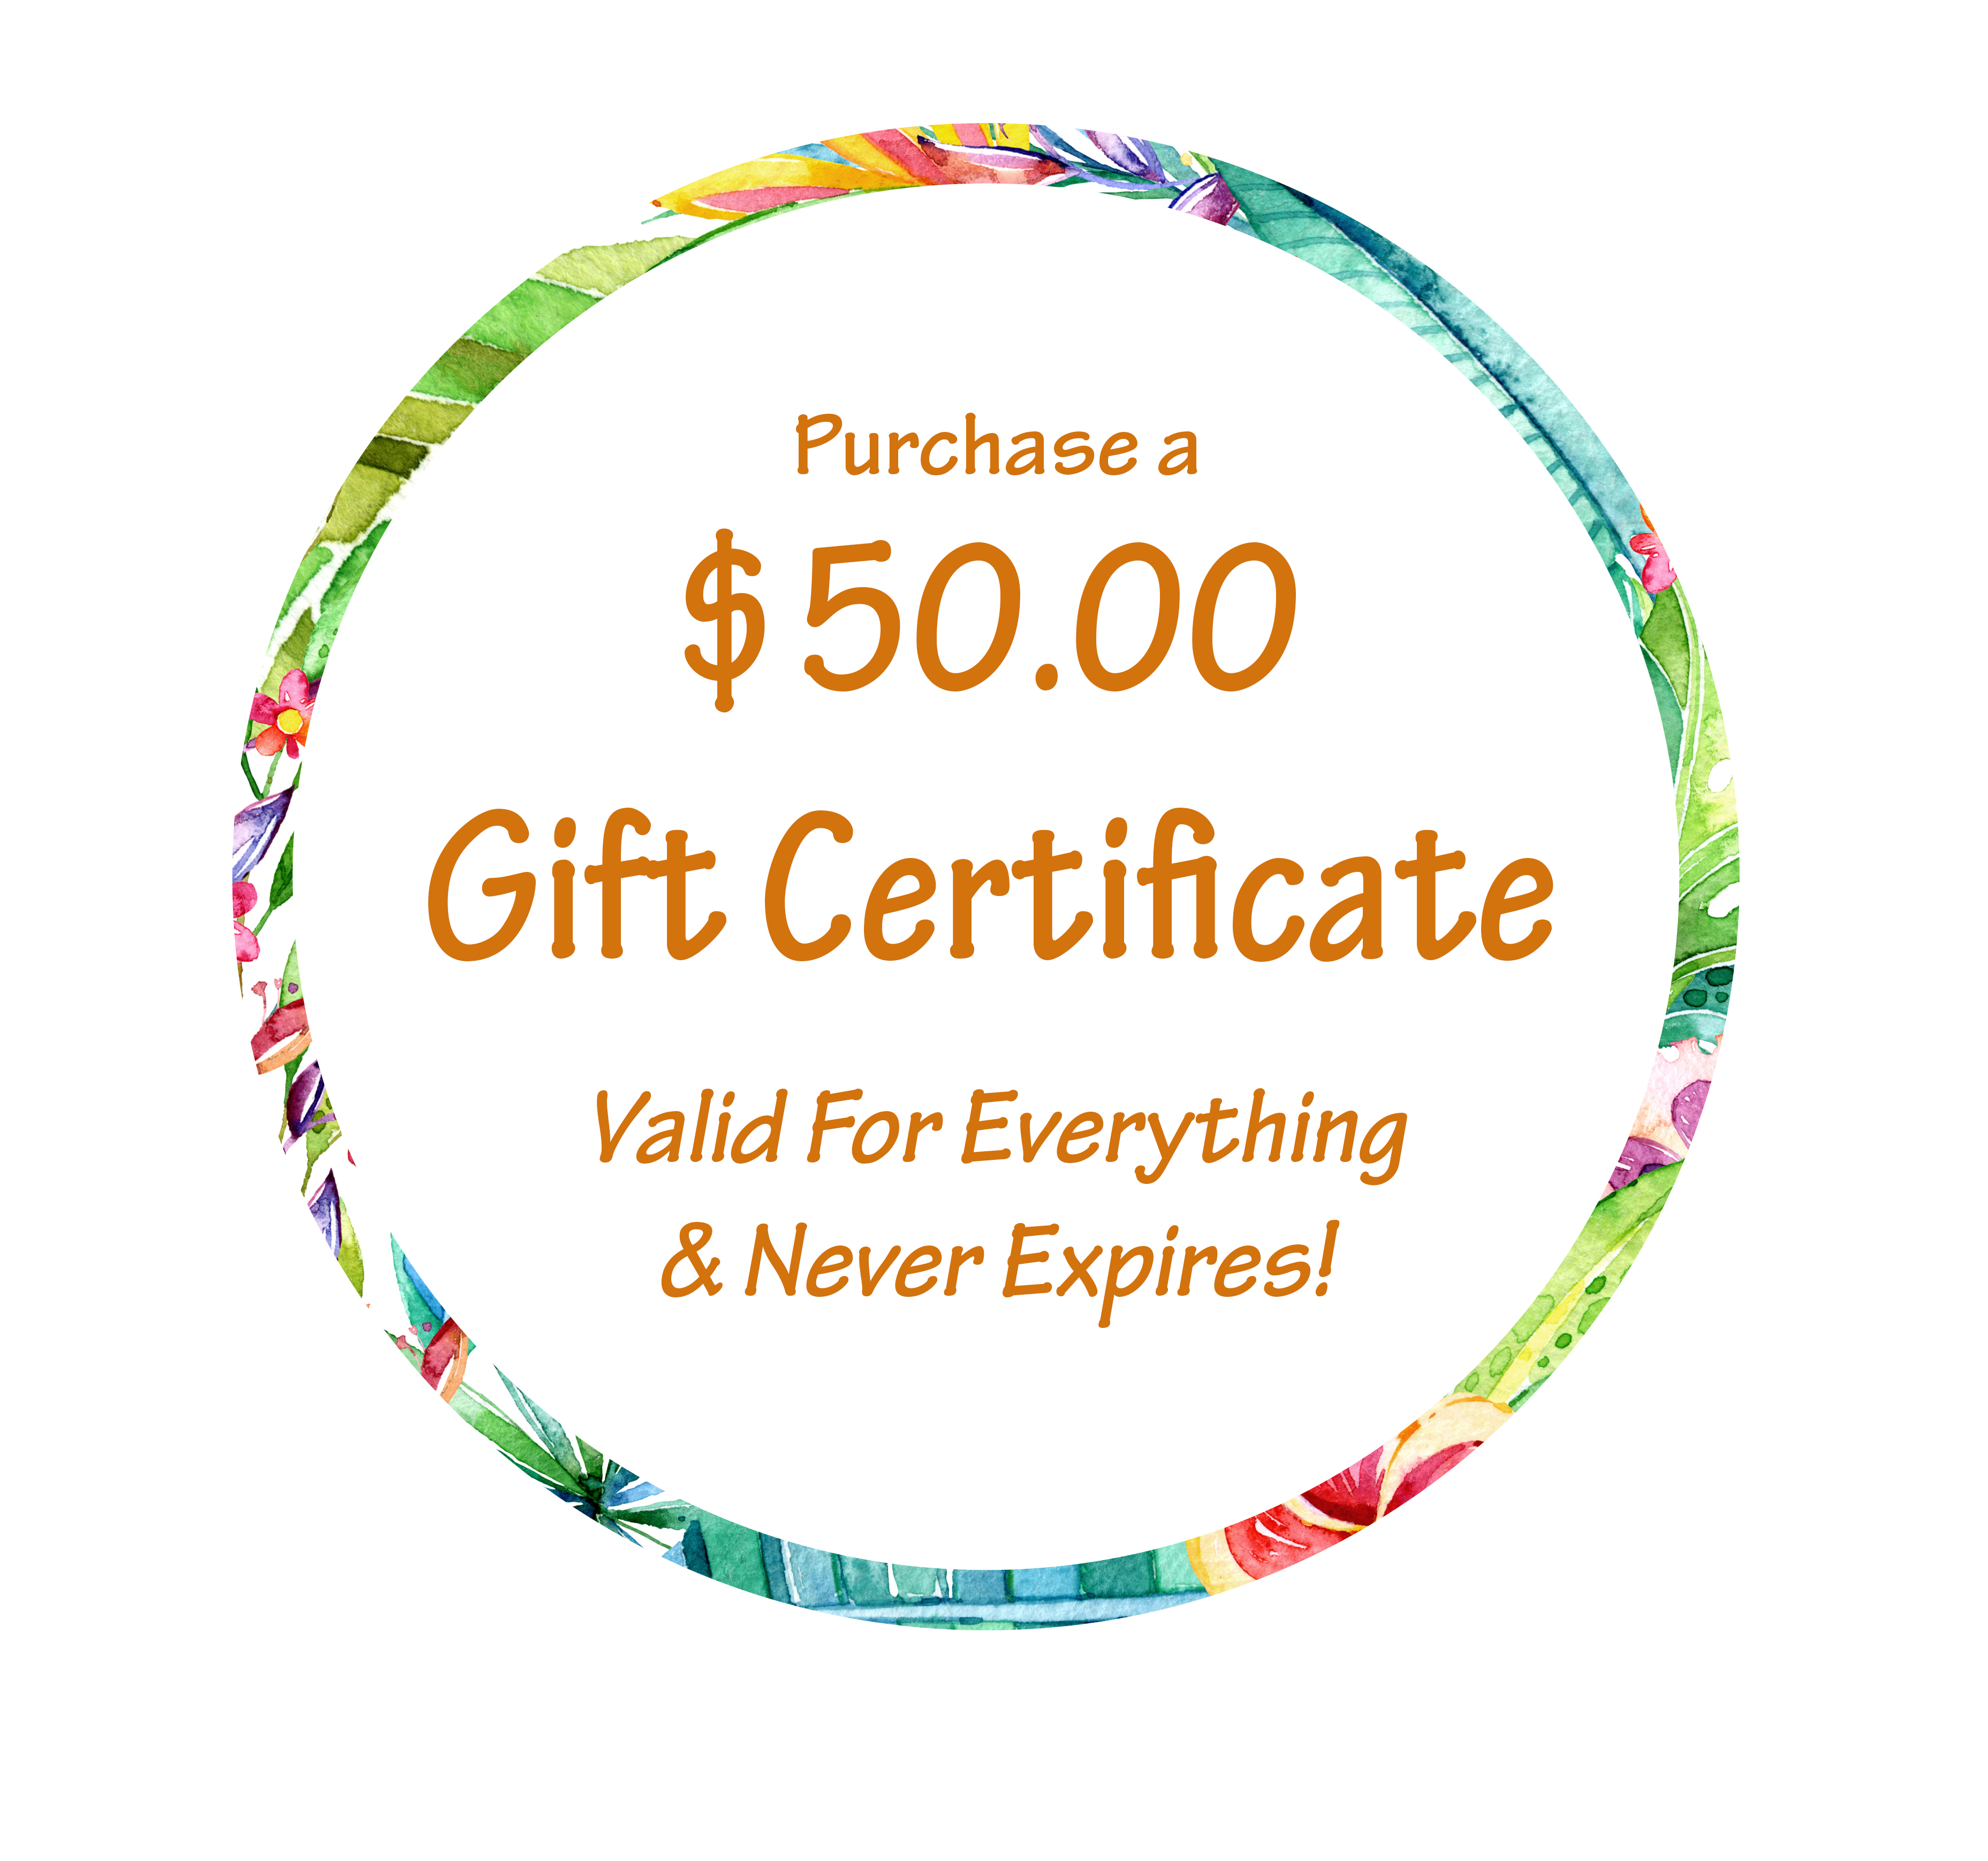 $50.00 Gift Certificate Ilustration